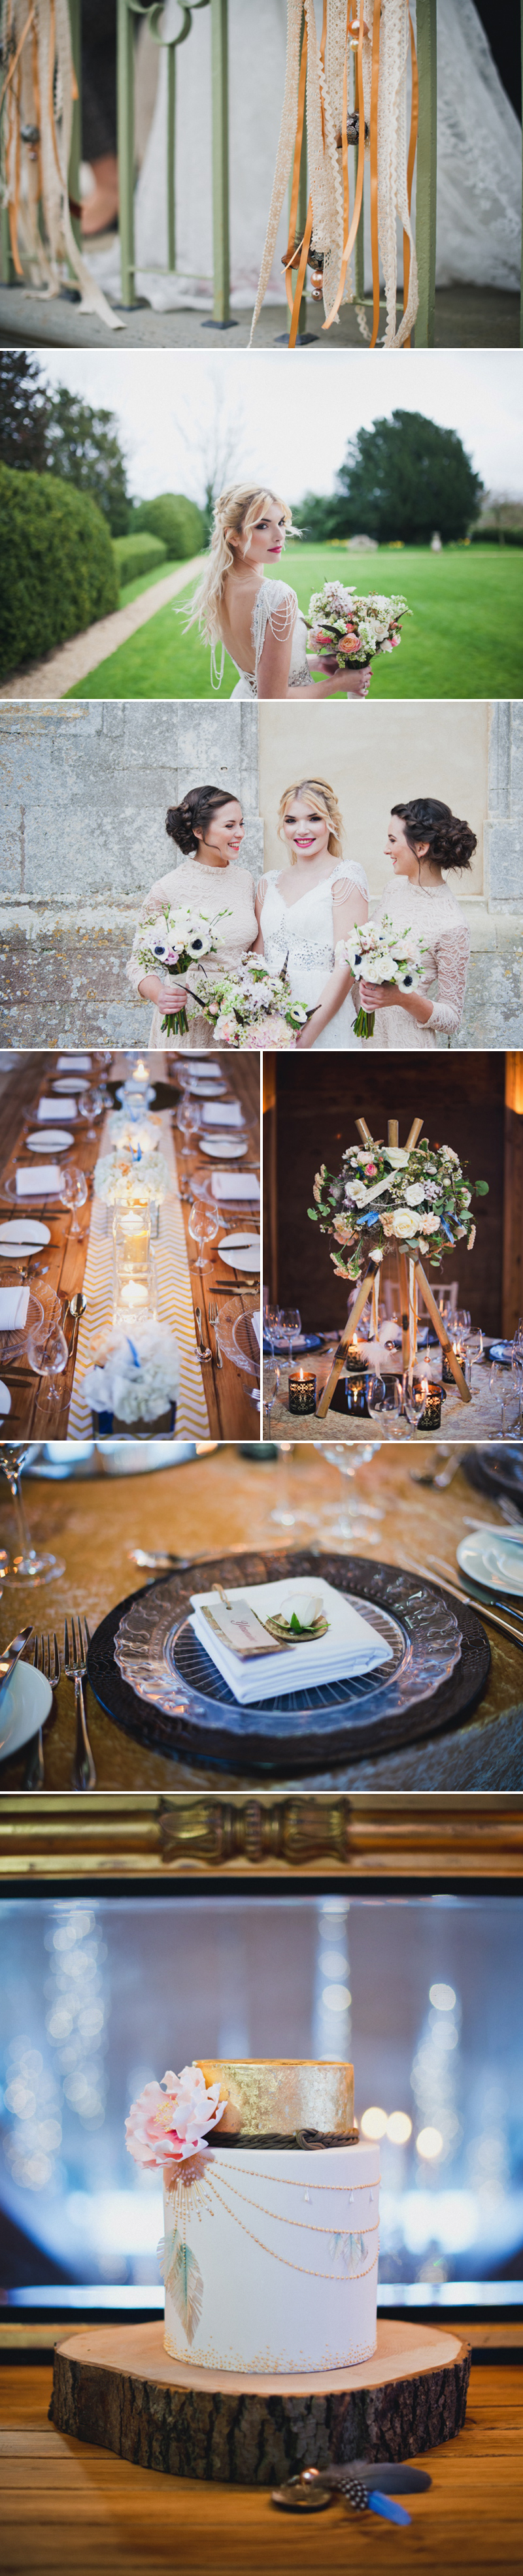 bohemian-bridal-styled-shoot-elmore-court-coco-wedding-venues-layer-2